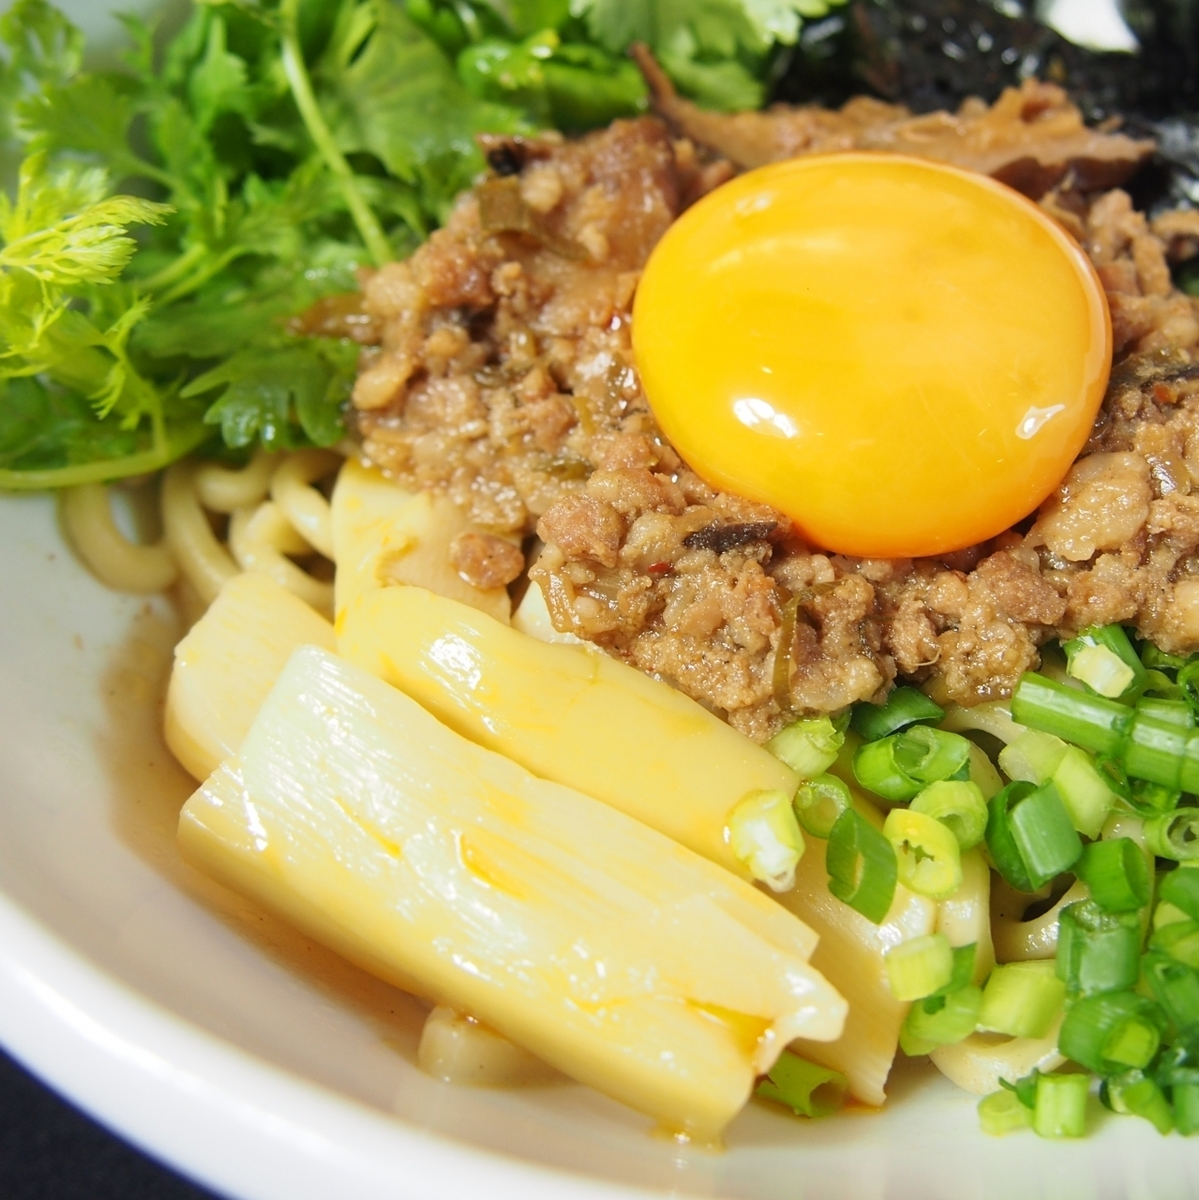 [Streets in the popular ♪] Taiwan Mazesoba 840 yen (excluding tax)